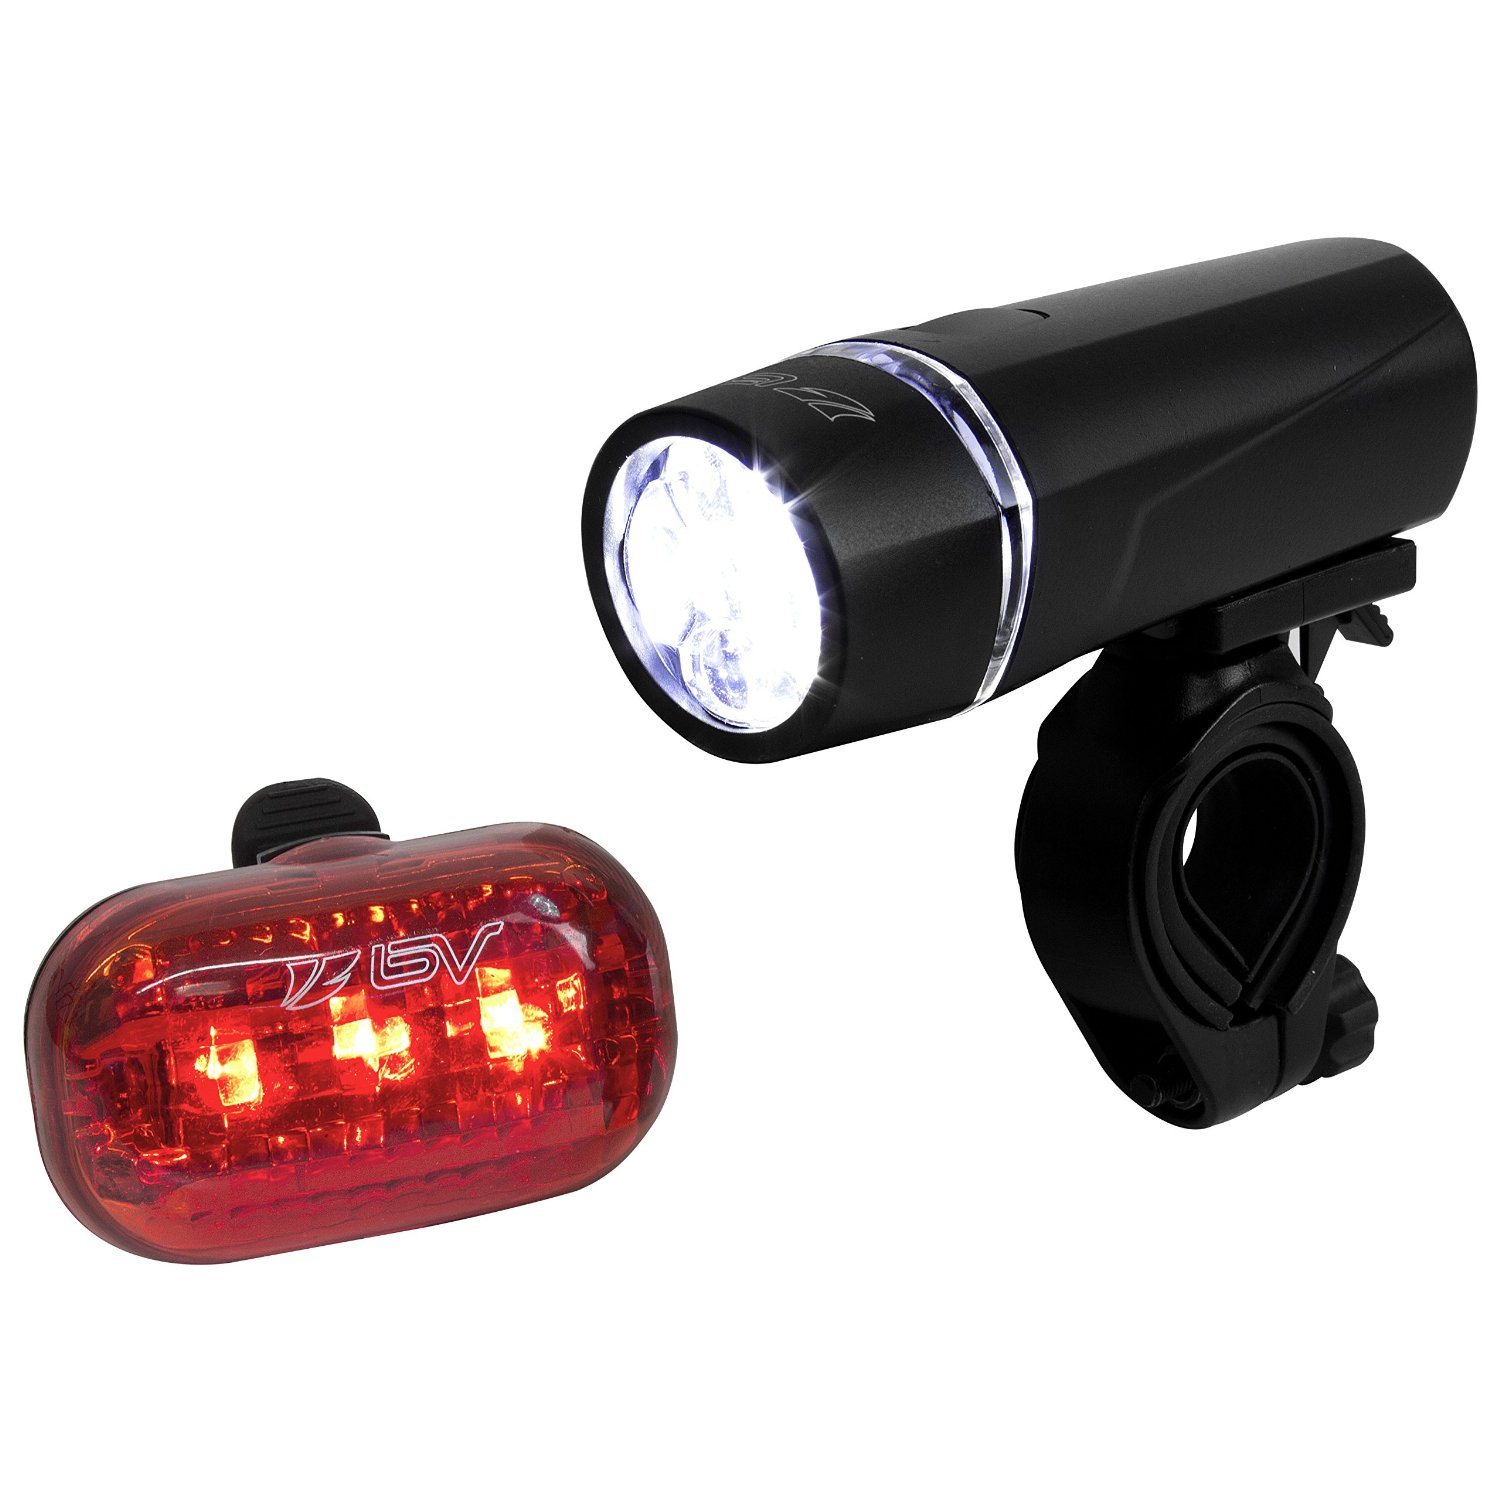 5 LED Waterproof Bike Bicycle Cycling Front And Rear Tail Light Set Super Bright